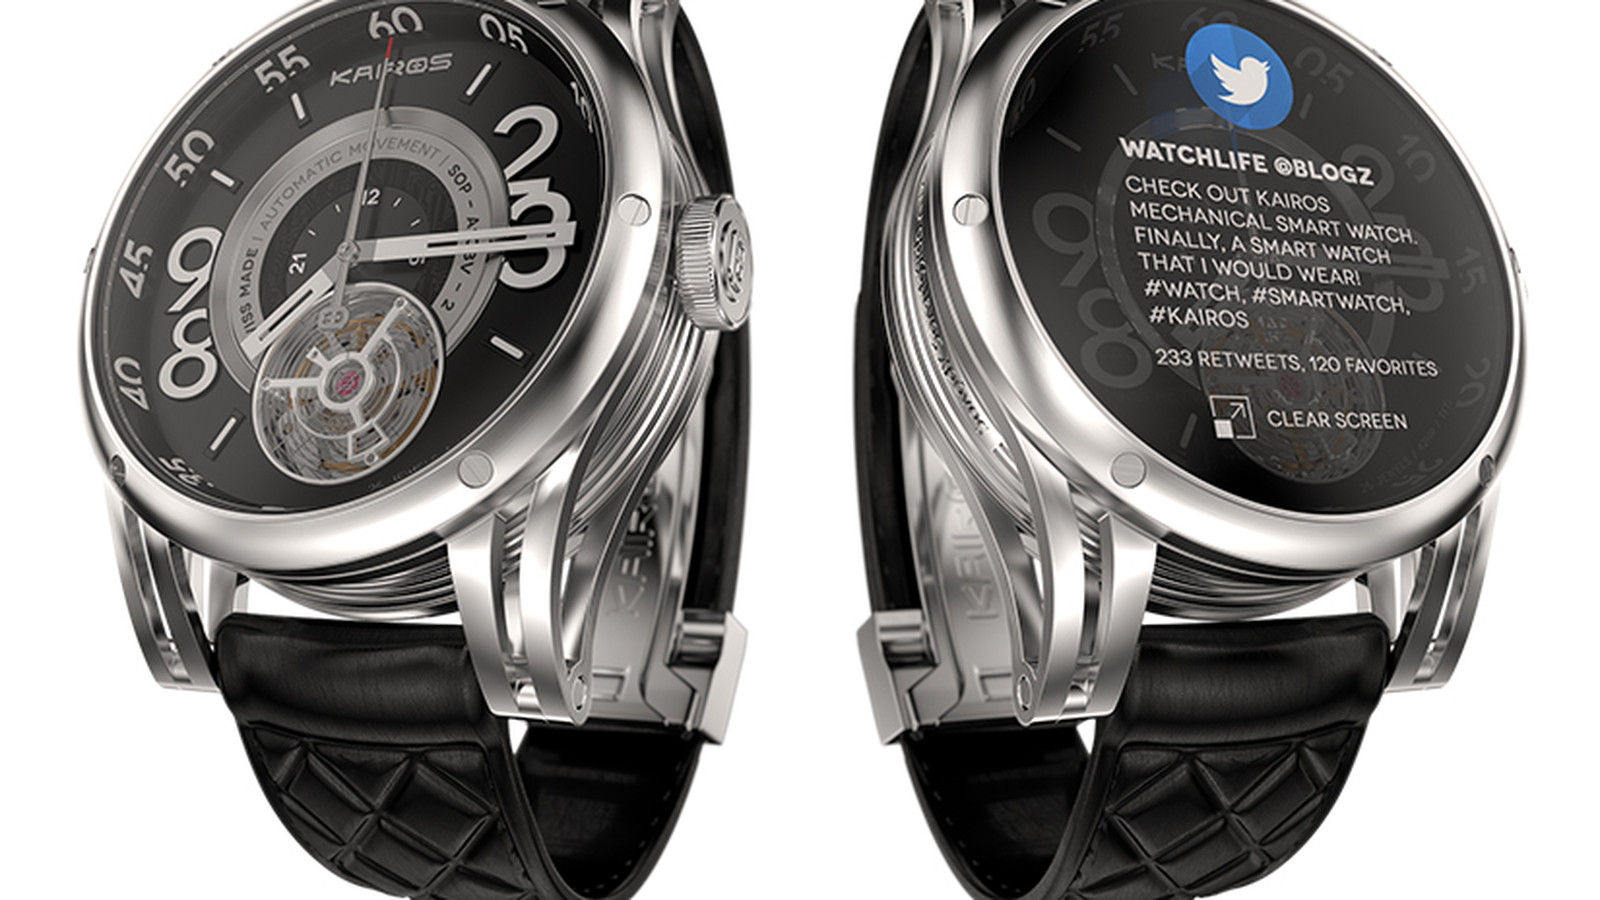 Is the Kairos smartwatch too good to be true?